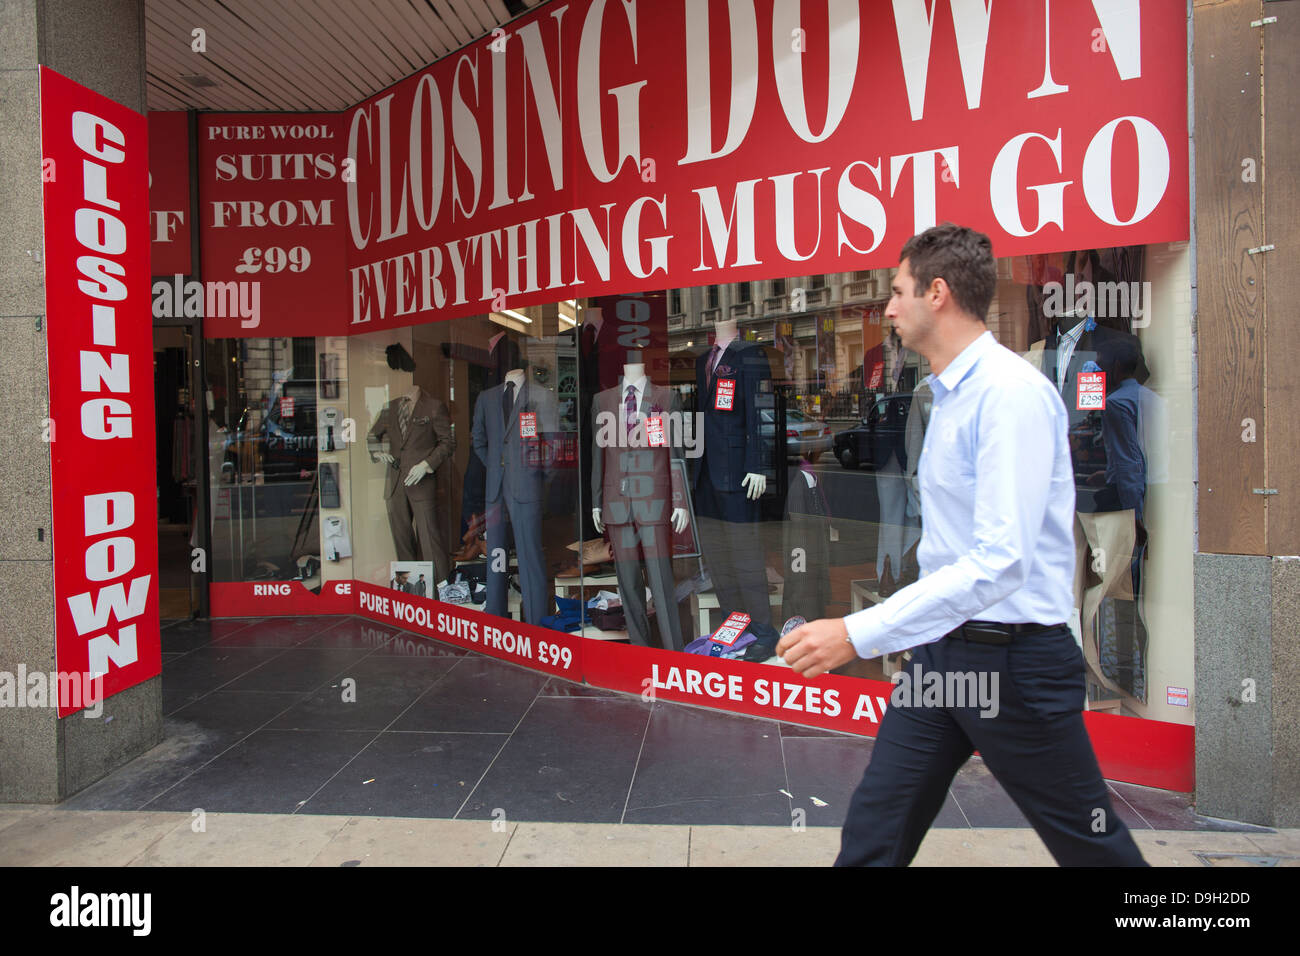 Everything Must Go, Closing Down Sale, Piccadilly, London, England, UK - Stock Image